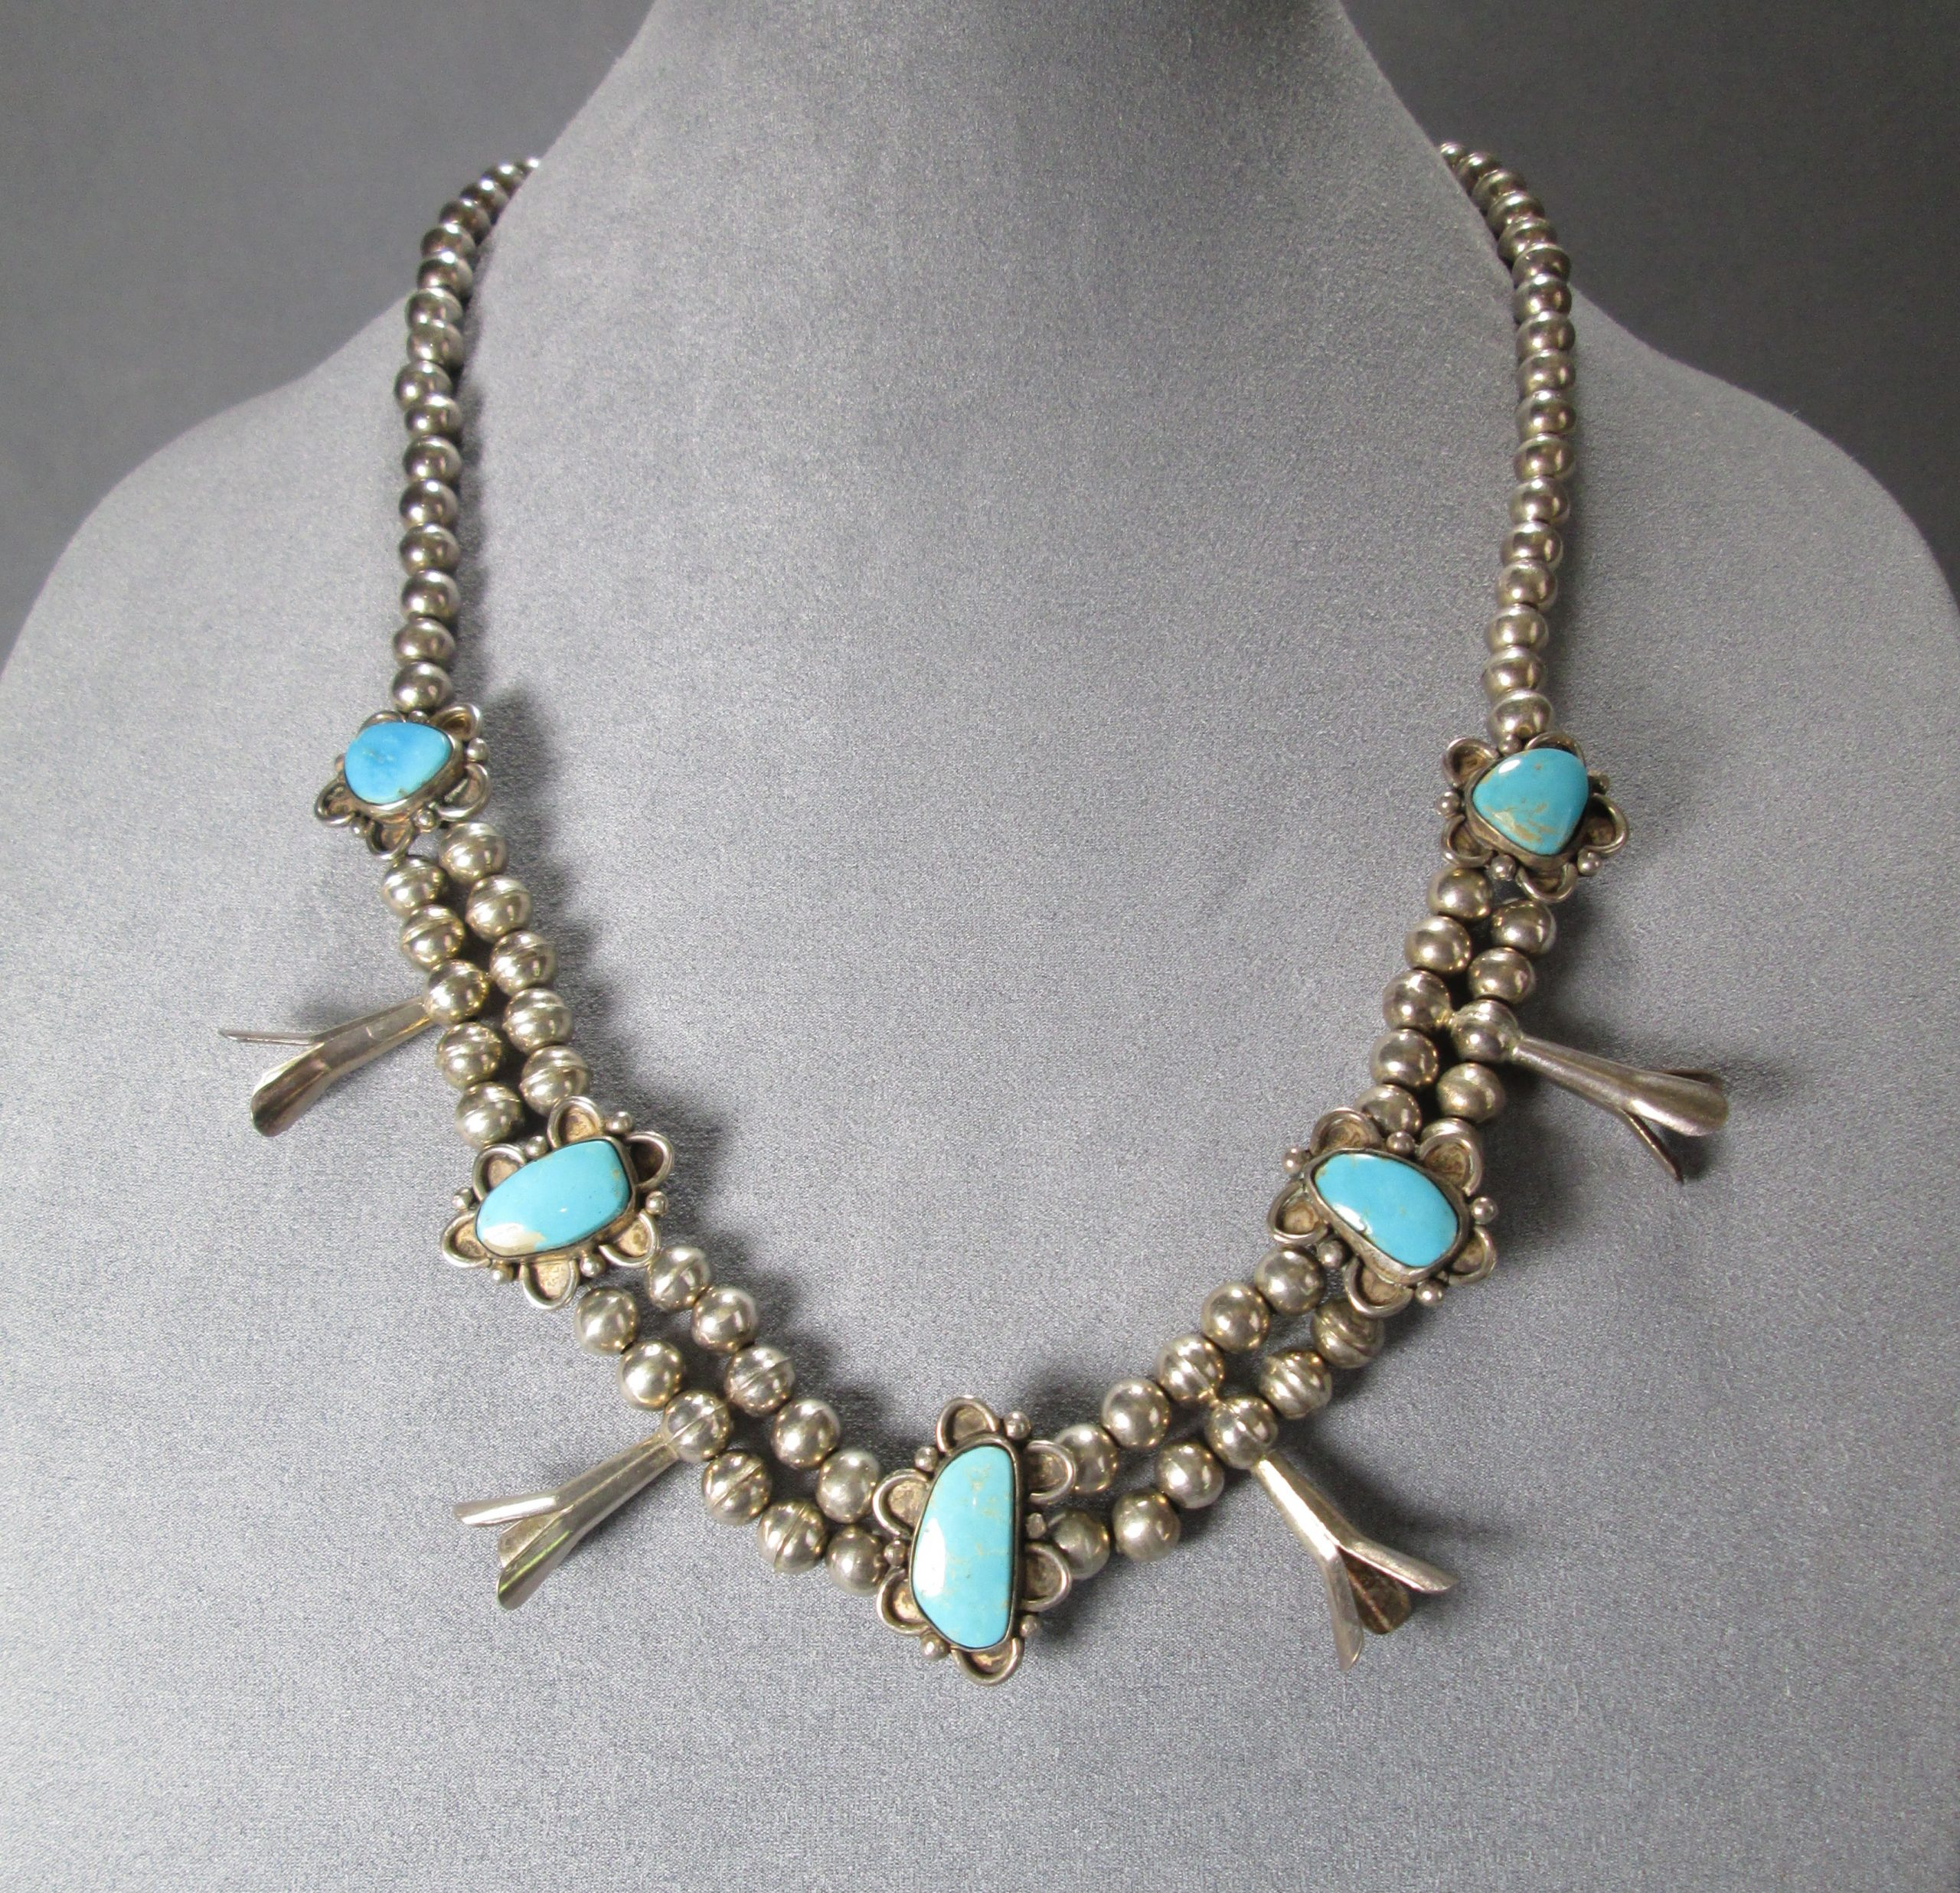 Squash Blossom Navajo Pearls Necklace